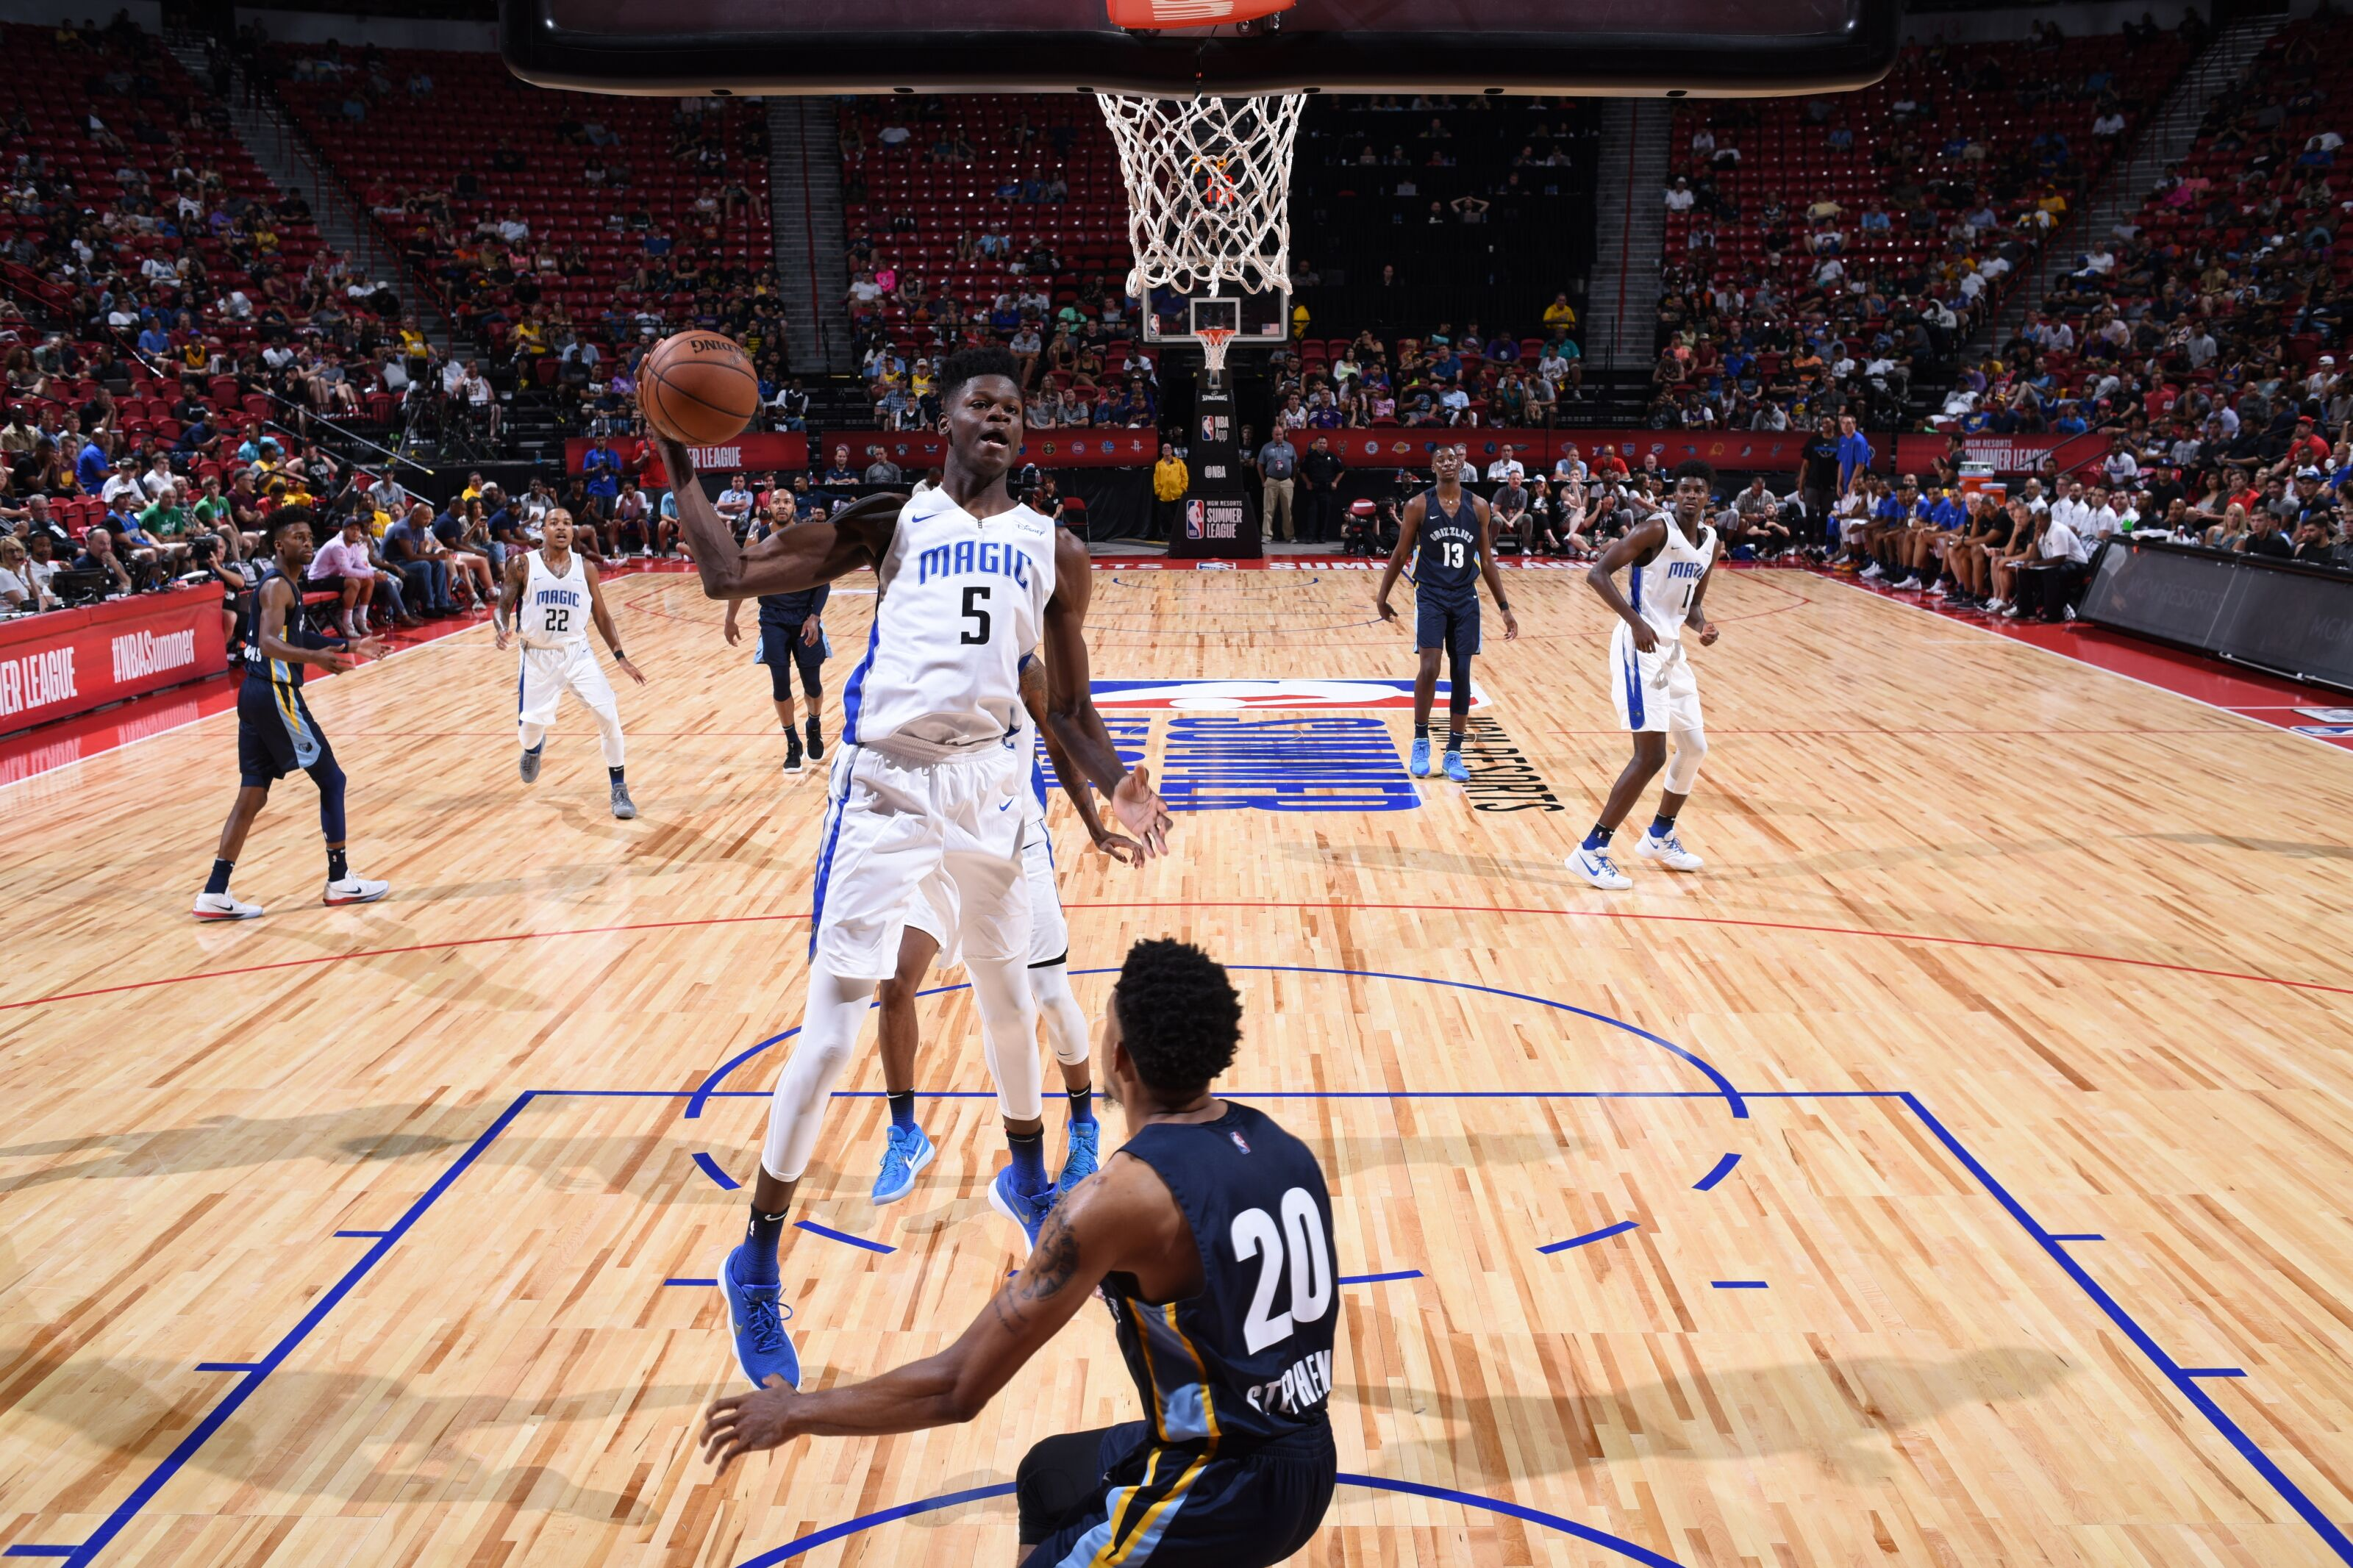 079841e40f6 Orlando Magic laying down their defense to defeat Memphis Grizzlies